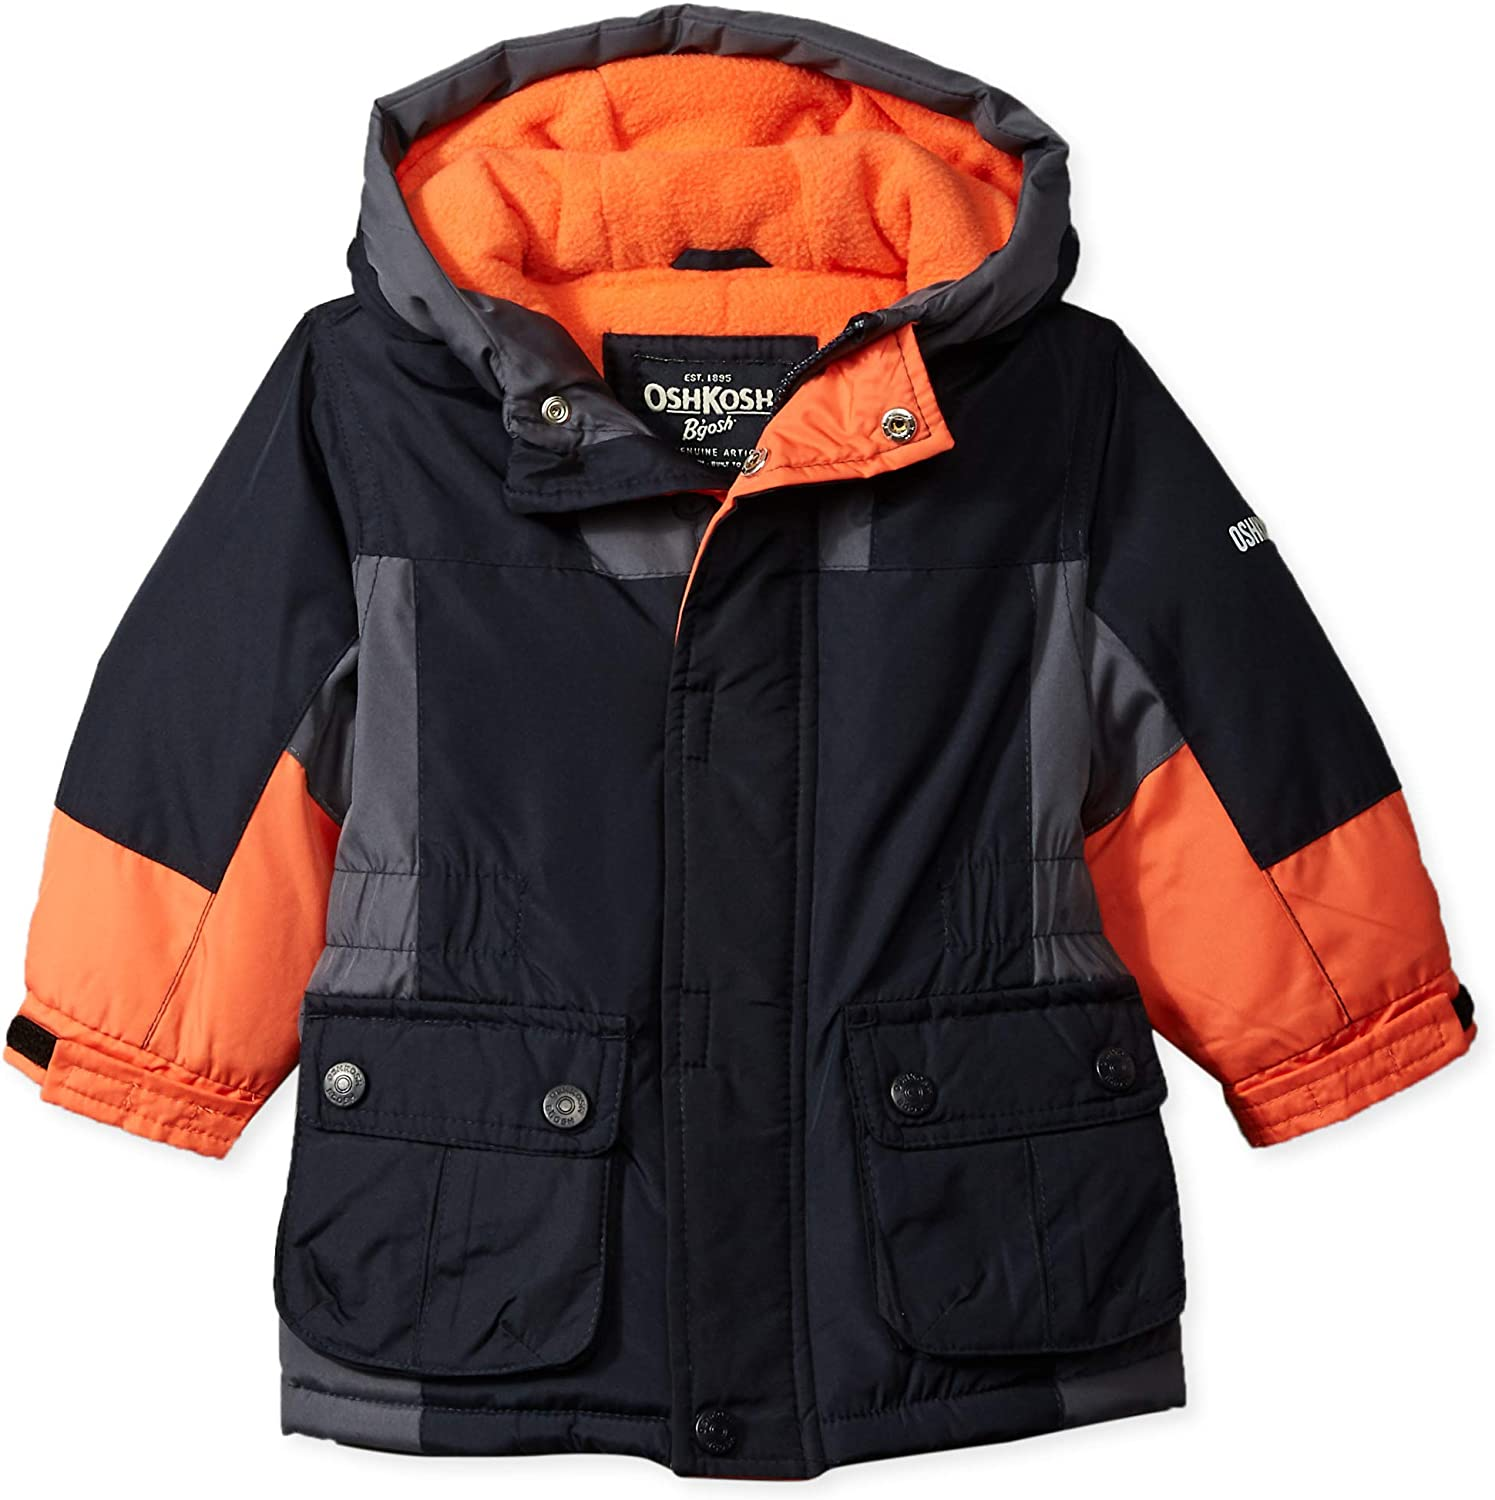 Osh Kosh B/'gosh Infant Boys Dark Grey /& Blue Puffer Coat Size 12M 18M 24M